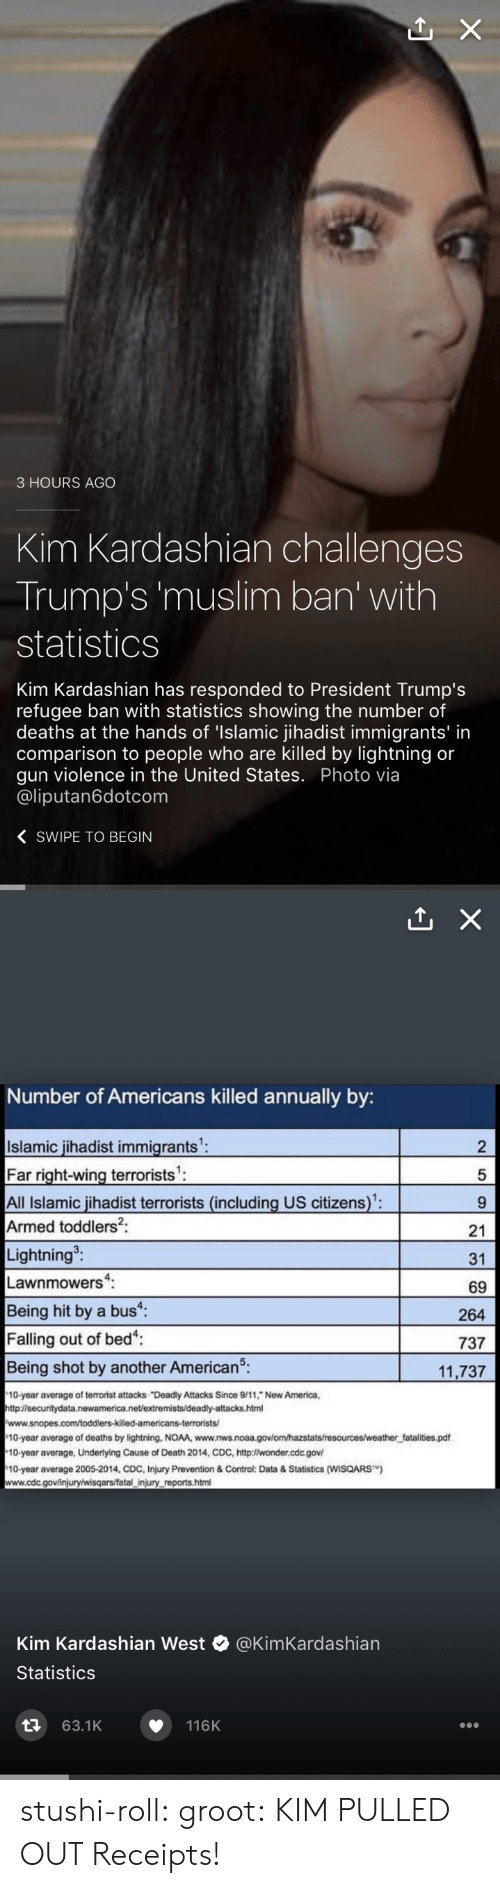 """9/11, America, and Gif: 3 HOURS AGO  Kim Kardashian challenges  Trump's 'muslim ban' with  statistics  Kim Kardashian has responded to President Trump's  refugee ban with statistics showing the number of  deaths at the hands of 'Islamic jihadist immigrants' in  comparison to people who are killed by lightning or  gun violence in the United States. Photo via  @liputan6dotcom  〈 SWIPE TO BEGIN   Number of Americans killed annually by:  Islamic jihadist immigrants  Far right-wing terrorists'  All Islamic jihadist terrorists (including US citizens):  Armed toddlers2:  Lightning  Lawnmowers:  Being hit by a bus  Falling out of bed  Being shot by another American5.  2  5  21  31  69  264  737  11,737  10-year average of terrorist attacks """"Deadly Attacks Since 9/11, New America,  http:l/securitydata.newamerica.net/extremists/deadly-attacks.html  10-year average of deaths by lightning, NOAA, www.nws.noaa.govlom/hazstats/resources/weather fatalities.pdf  10-year average, Underlying Cause of Death 2014, CDC, http:lwonder.cdc.gov  10-year average 2005-2014, CDC, Injury Prevention & Control: Data&Statistics (WISQARS)  www.cdc.gov/injury/wisqars/fatal injury reports.html  Kim Kardashian West @KimKardashian  Statistics  63.1K  116K stushi-roll:  groot: KIM PULLED OUT Receipts!"""